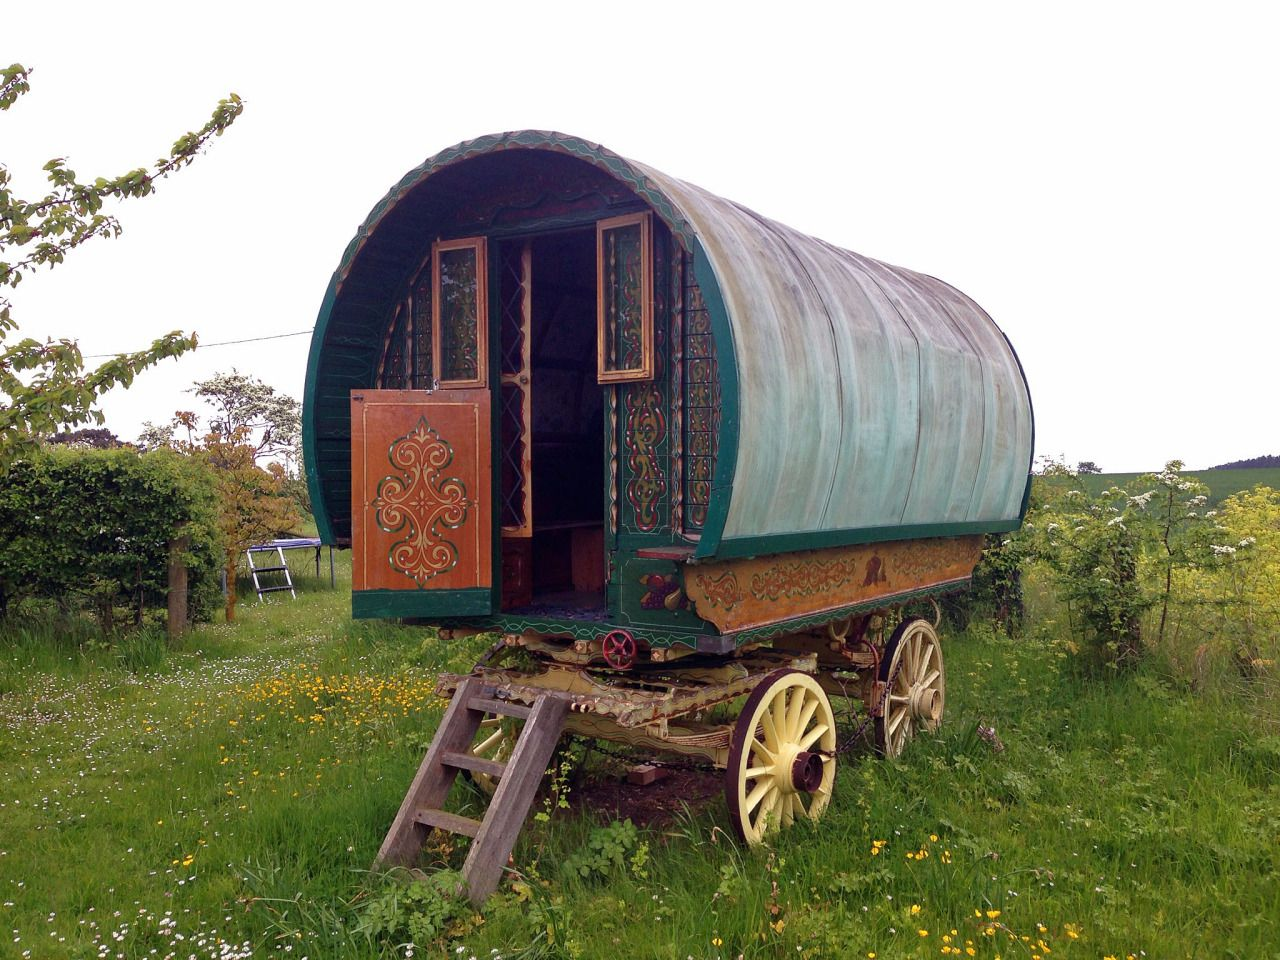 Green Patrol: Off RoadMy uncle's gypsy caravan he keeps in his garden in North Norfolk by the sea, complete with beds and a warm stove.